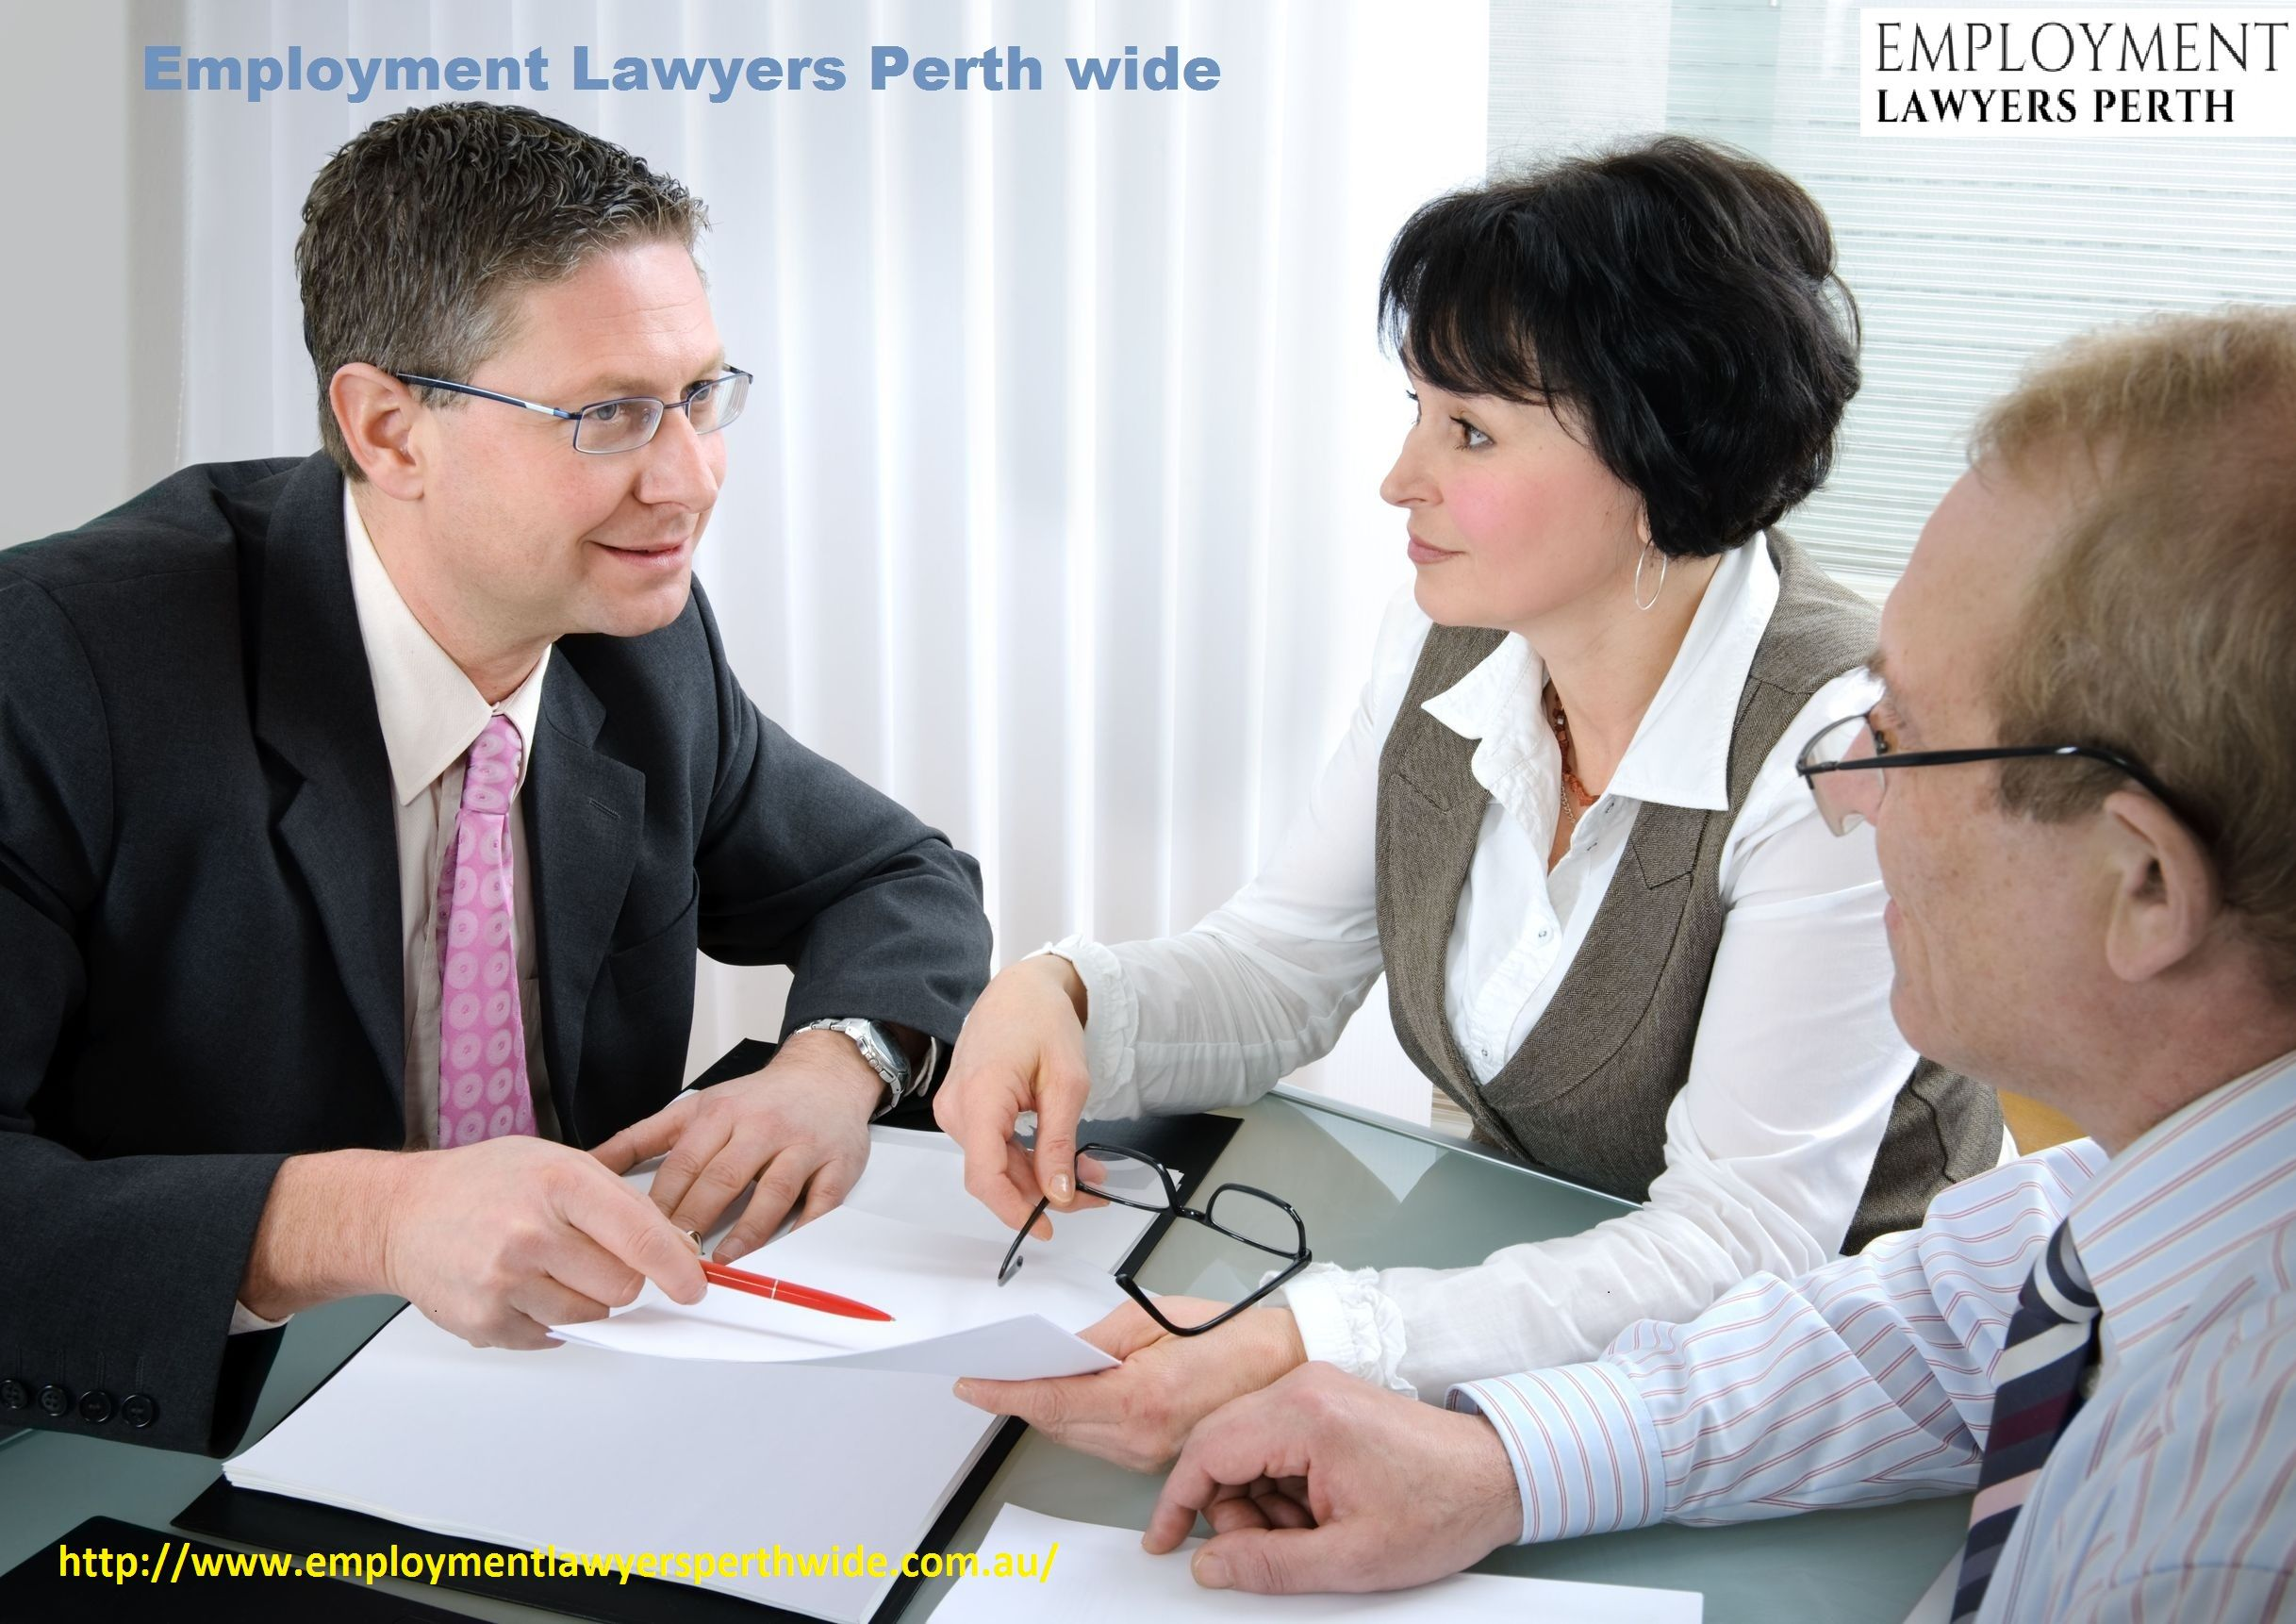 Employment Lawyers Perth Offers Help And Legal Advice To The